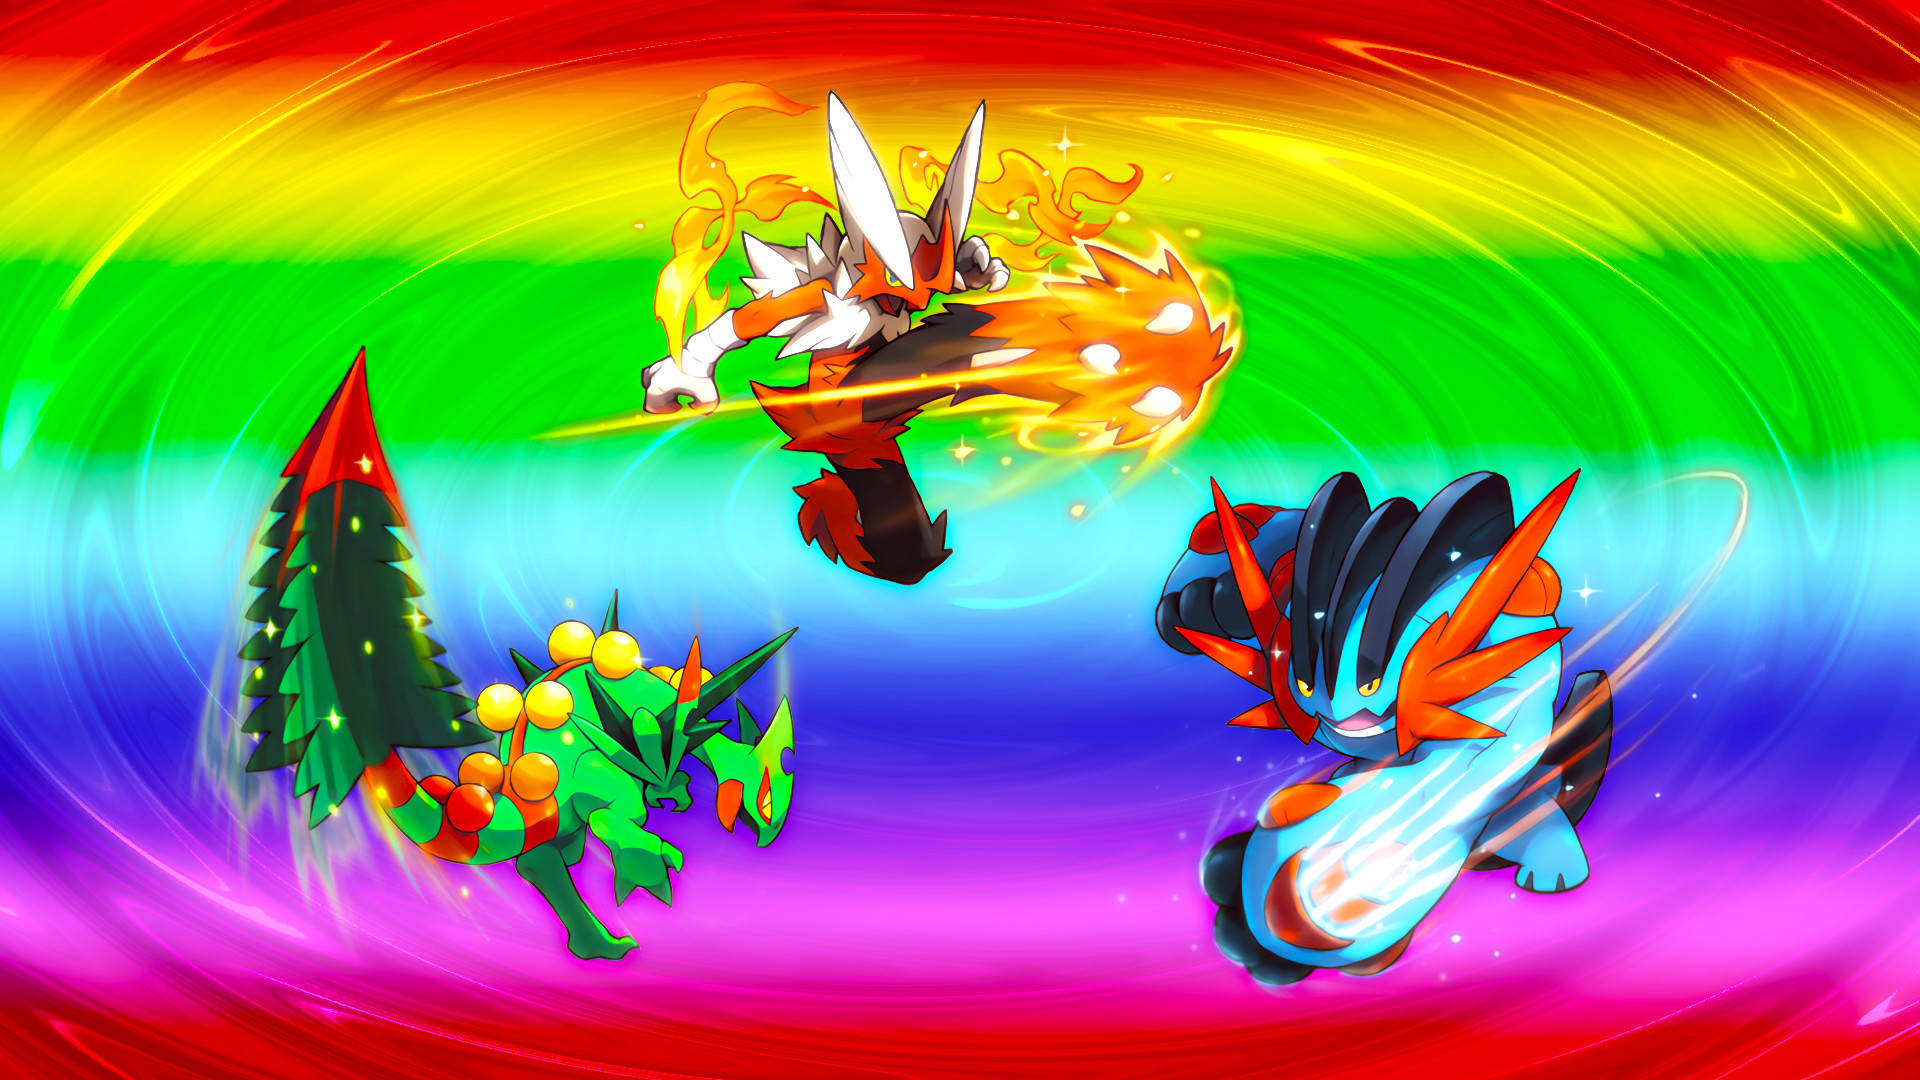 1920x1080 Mega Hoenn Starters Wallpaper · Mega Hoenn Starters Wallpaper by Glench